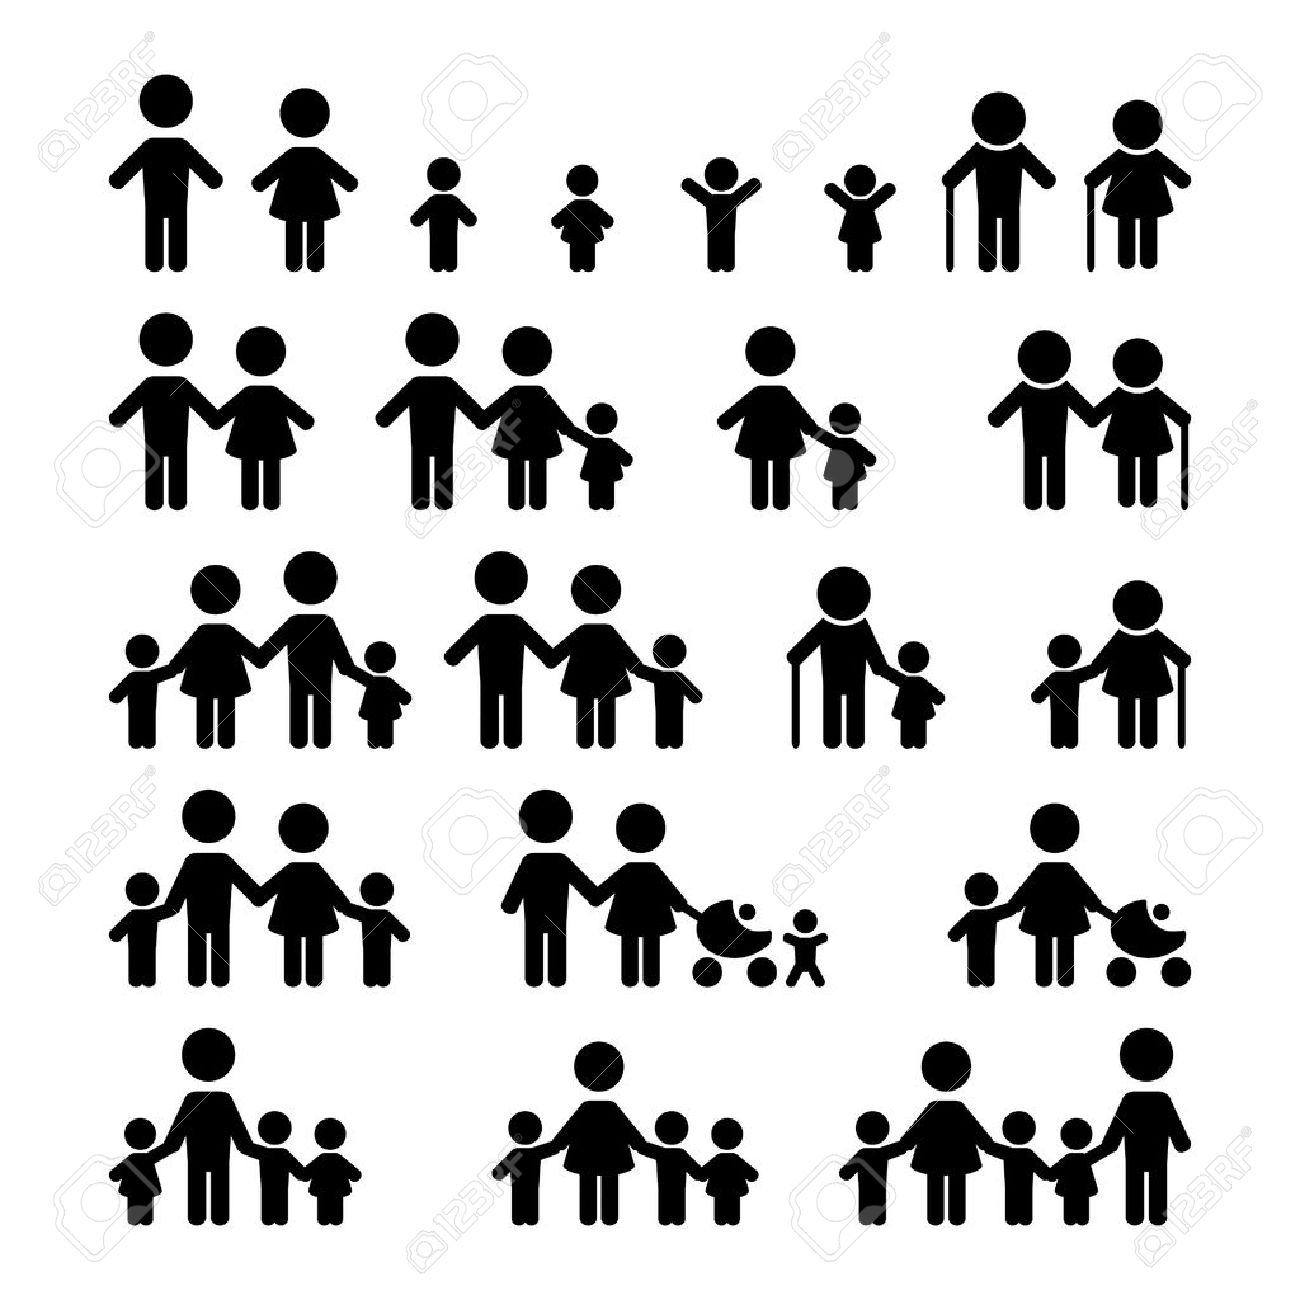 Family icons set Stock Vector - 45261162